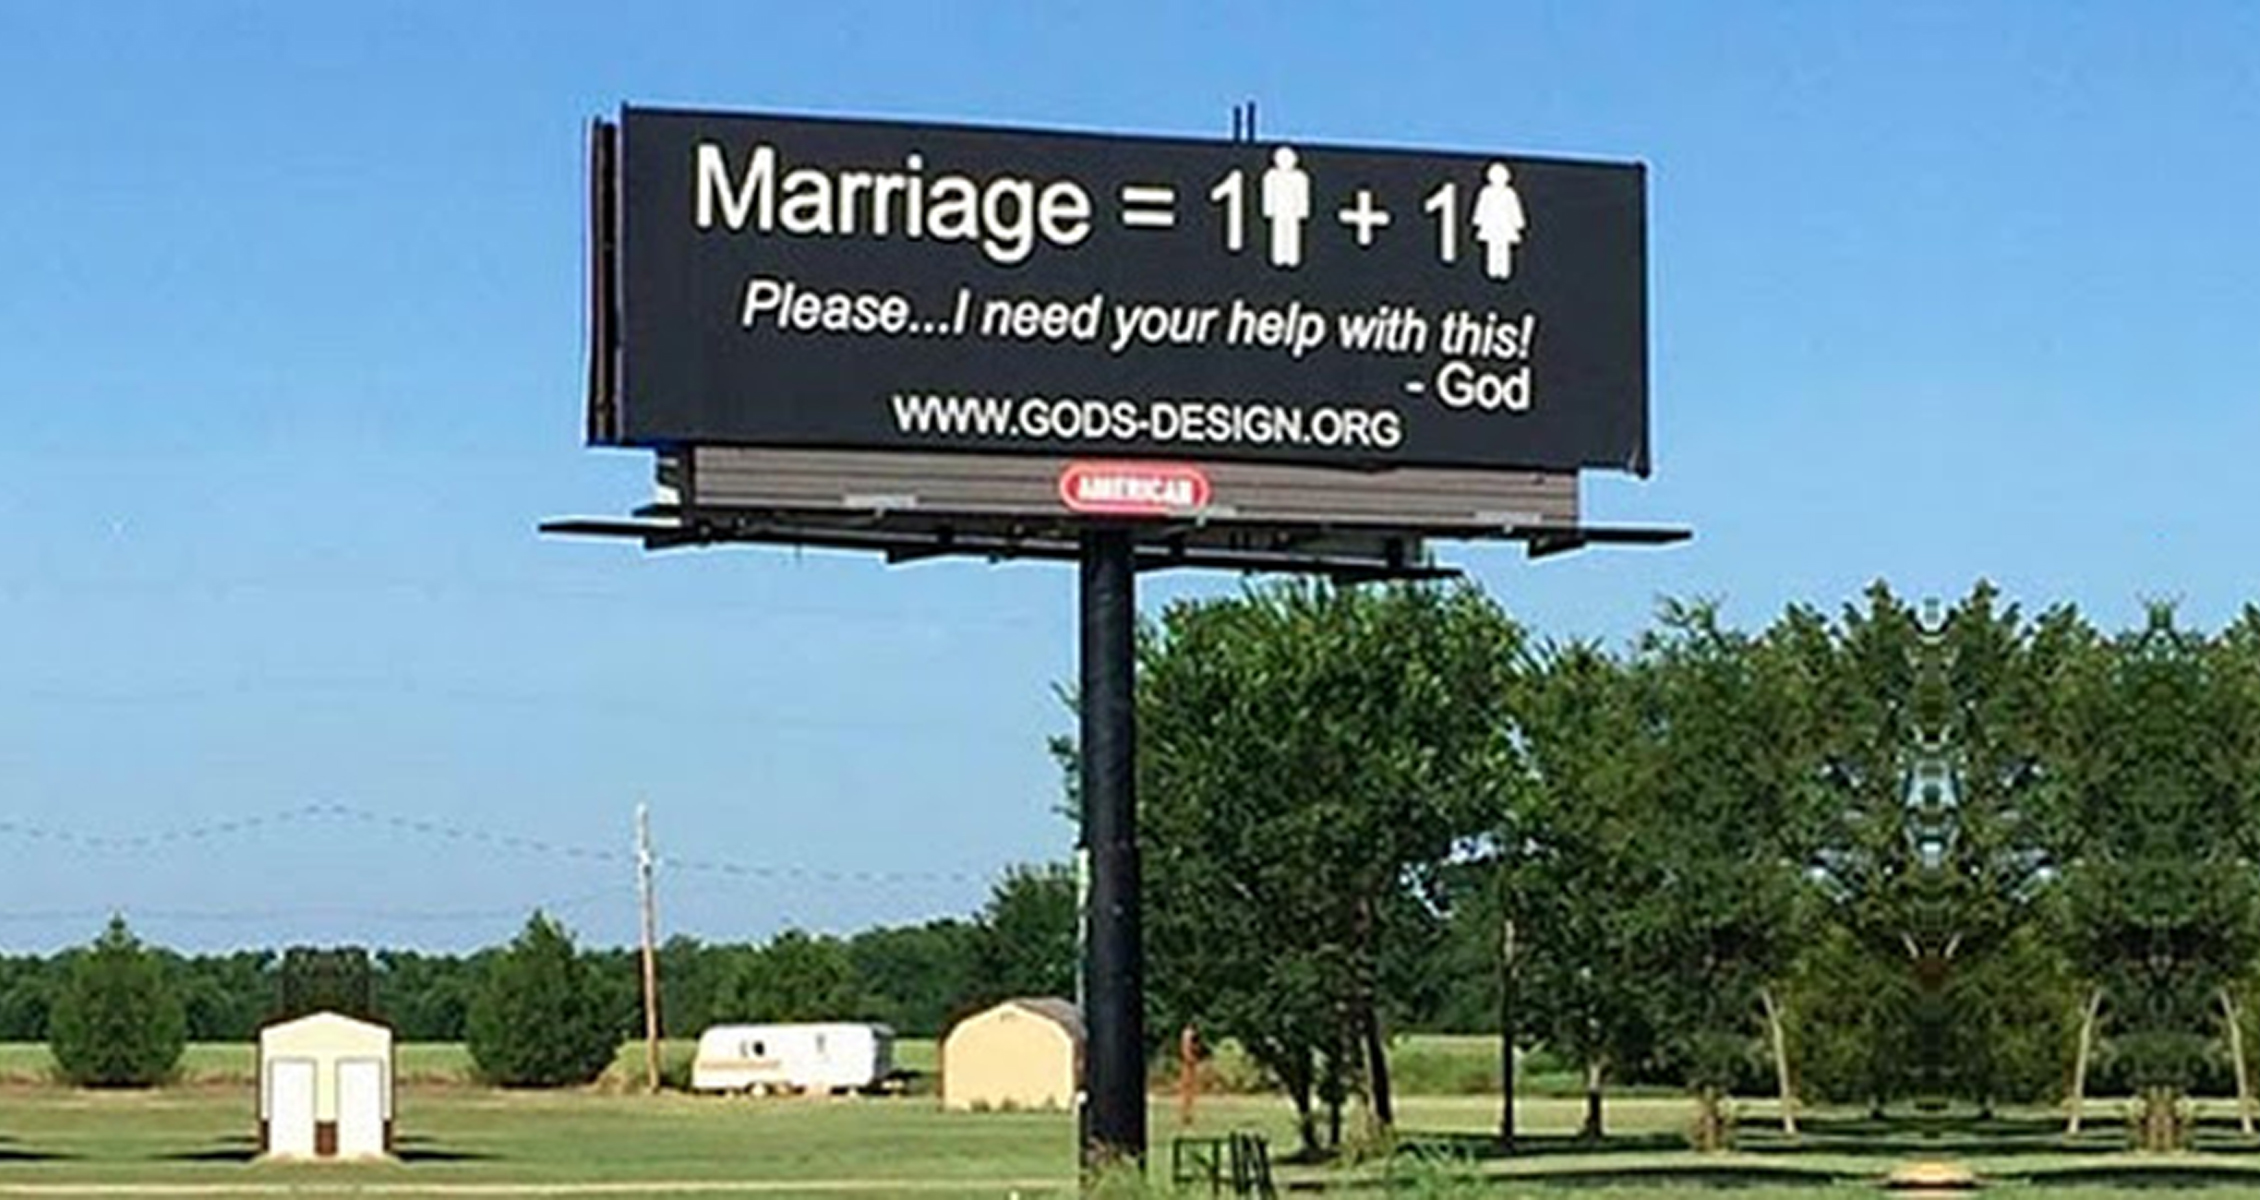 Christian Couple Plan 1,000 Anti-Gay Billboards